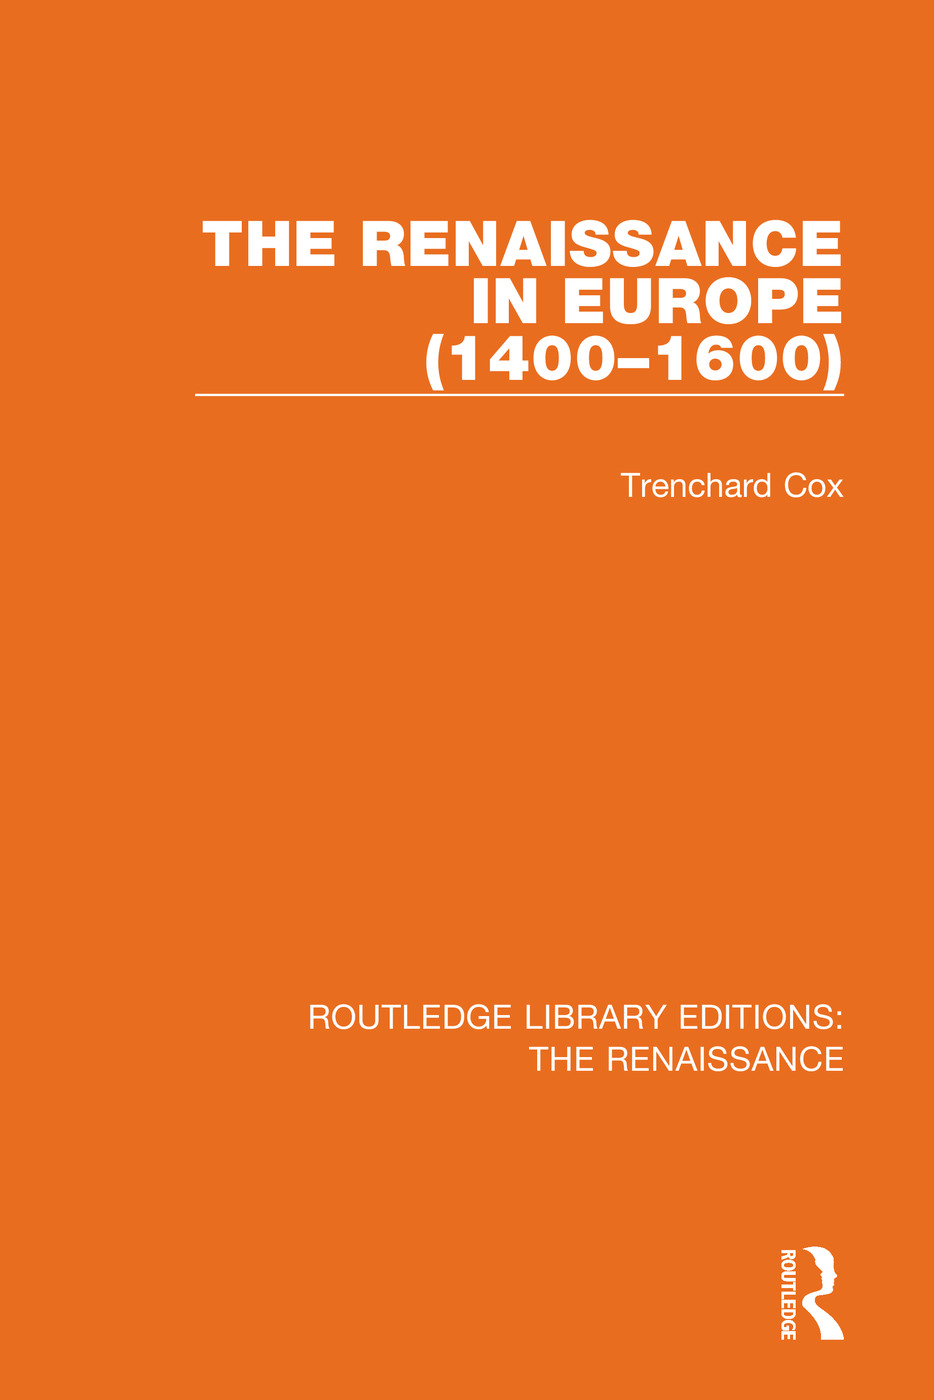 The Renaissance in Europe book cover